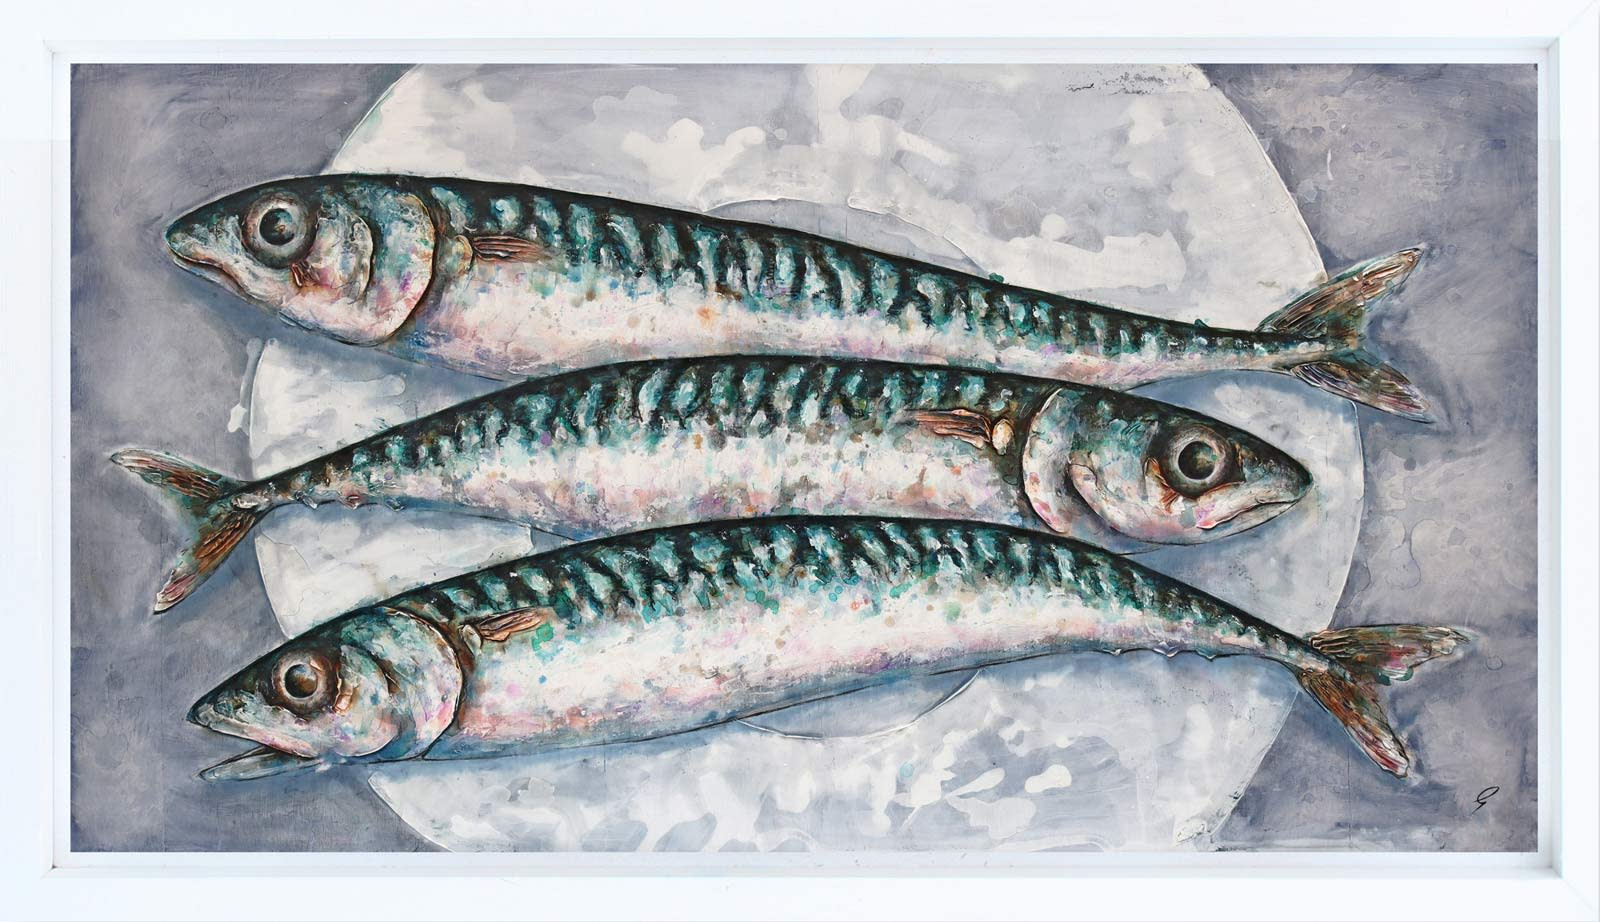 Three Mackerel On A Plate